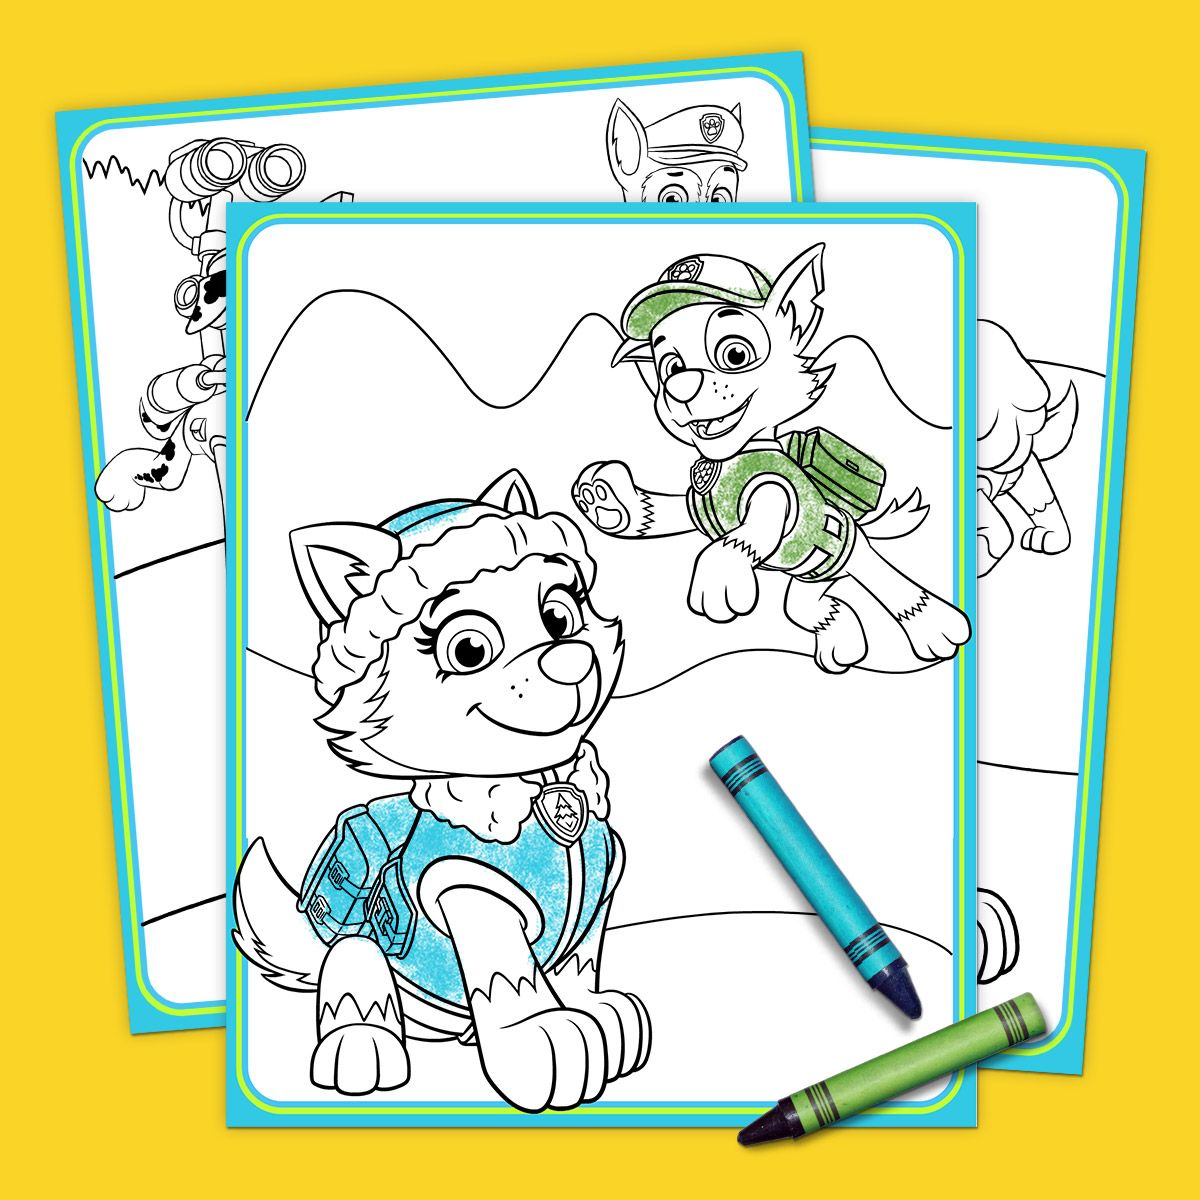 The Top 10 PAW Patrol Printables of All Time - Paw patrol printables, Paw patrol coloring, Paw patrol birthday, Paw patrol, Paw patrol party, Paw patrol coloring pages - If your preschooler loves PAW Patrol, you know that they can't get enough of those fantastic, fearless pups  PAW Patrol toys, PAW Patrol bedding, PAW Patro